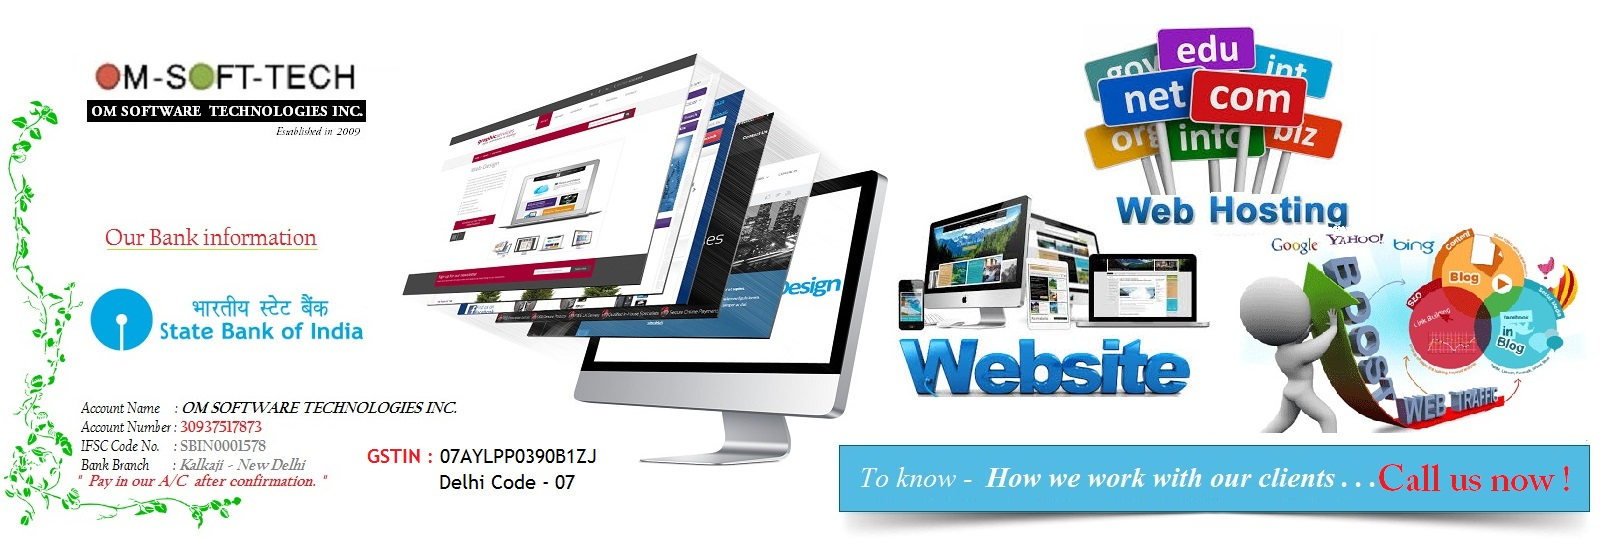 Website Designing company in Delhi 9818820411, Web